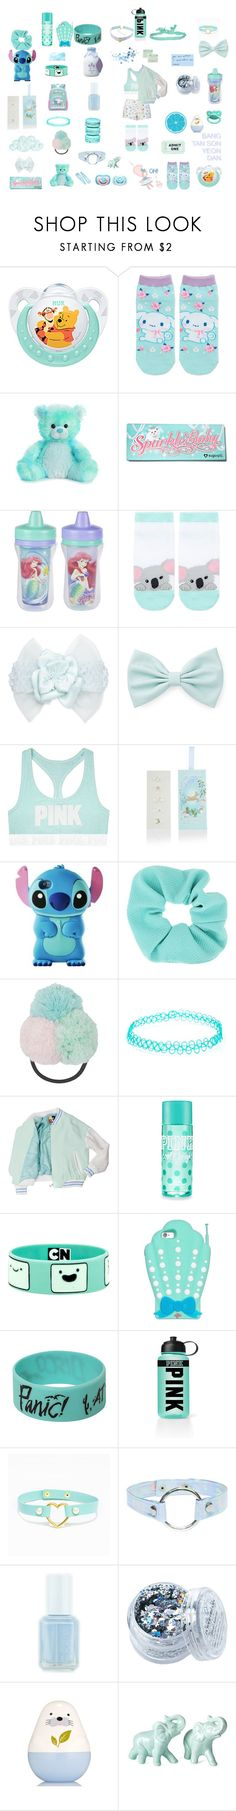 """aesthetic baby"" by unicorn-923 ❤ liked on Polyvore featuring Disney, Sugarpill, Au Jour Le Jour, Forever 21, CachCach, Monsoon, Topshop, Hot Topic, Victoria's Secret PINK and Kate Spade"